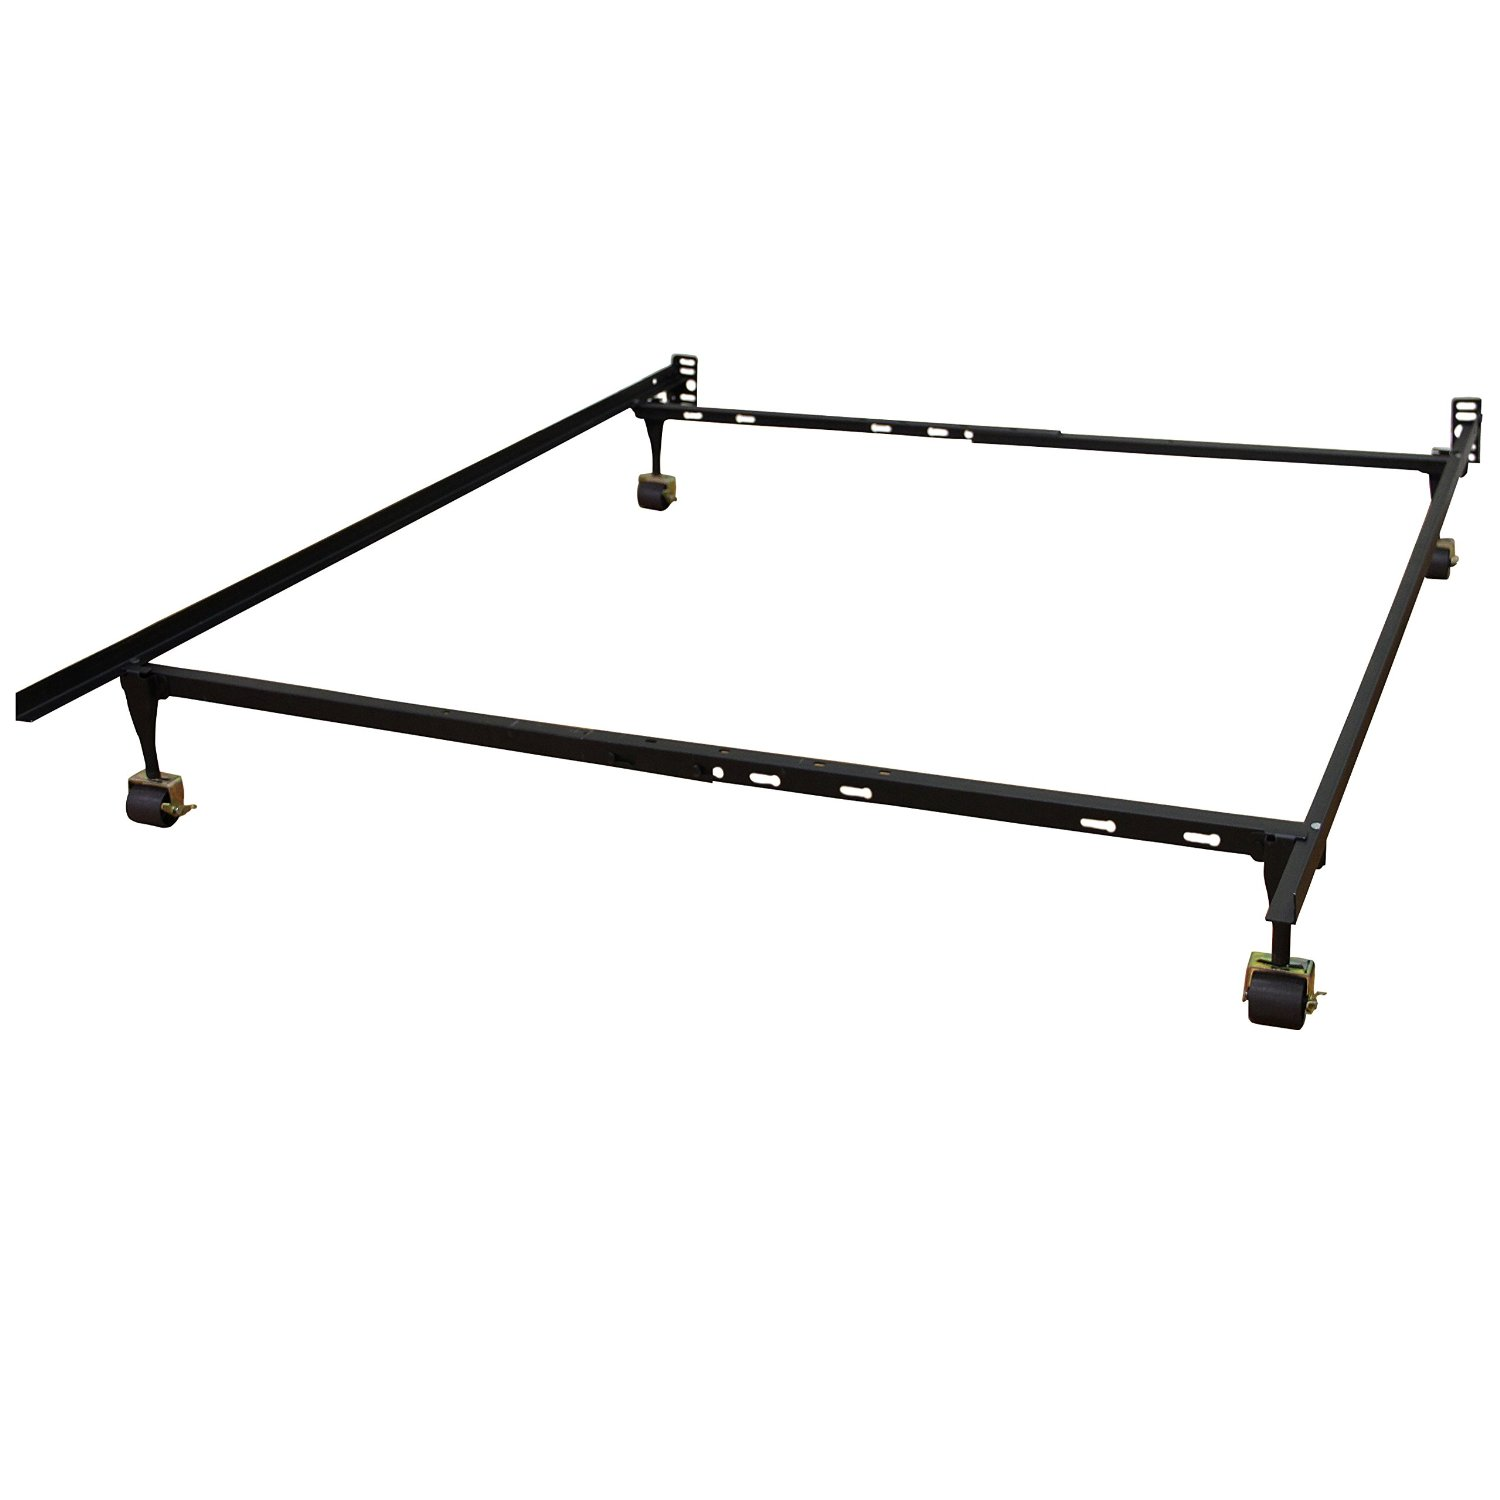 Cheap Twin Xl Adjustable Bed, find Twin Xl Adjustable Bed deals on ...